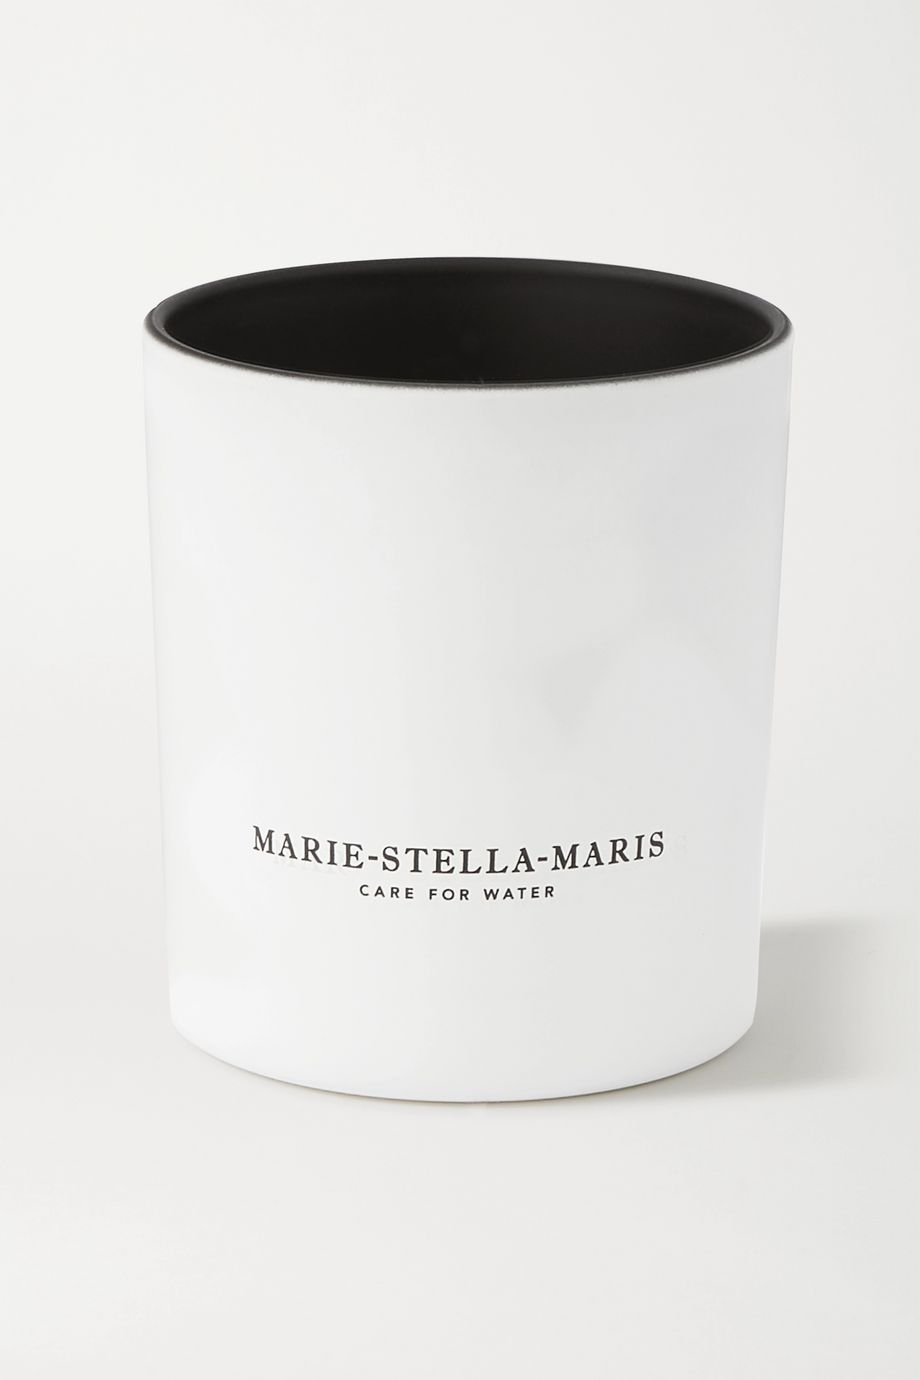 Marie-Stella-Maris No.76 Courage des Bois scented candle, 220g